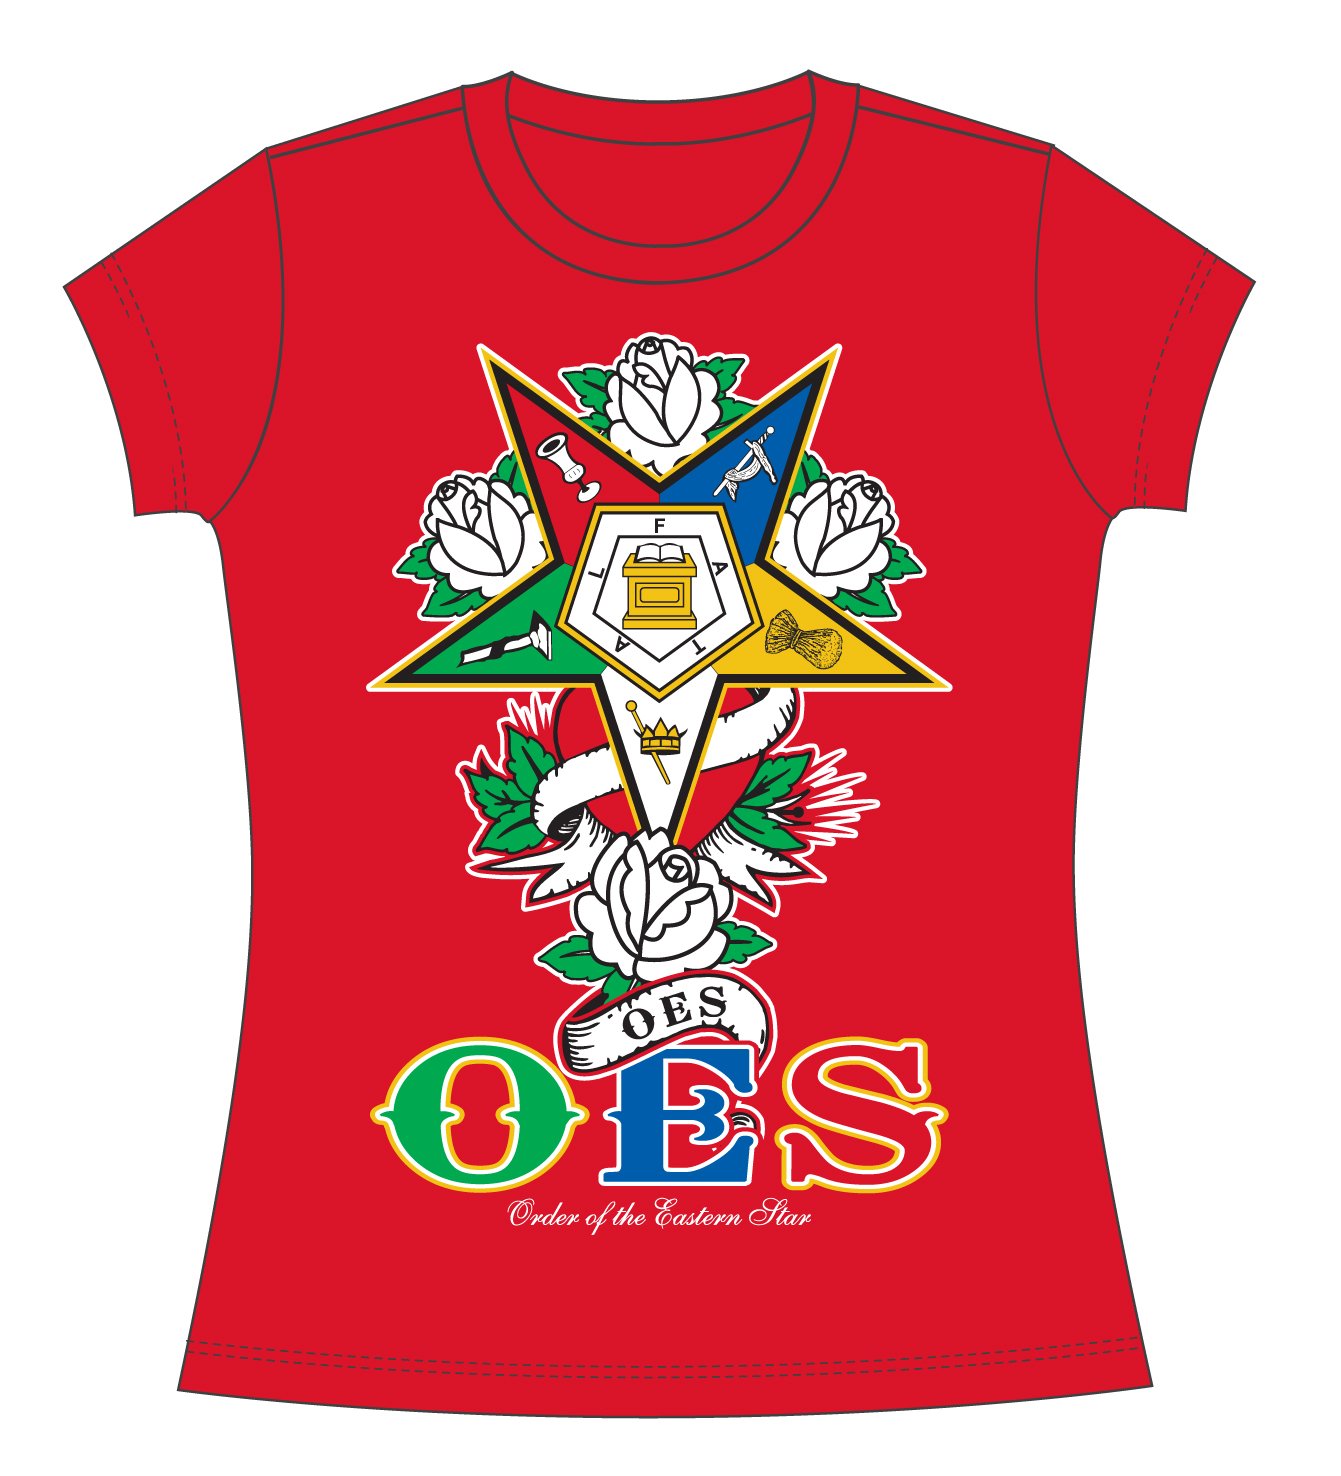 Oes Order Of The Eastern Star Apparel T Shirt